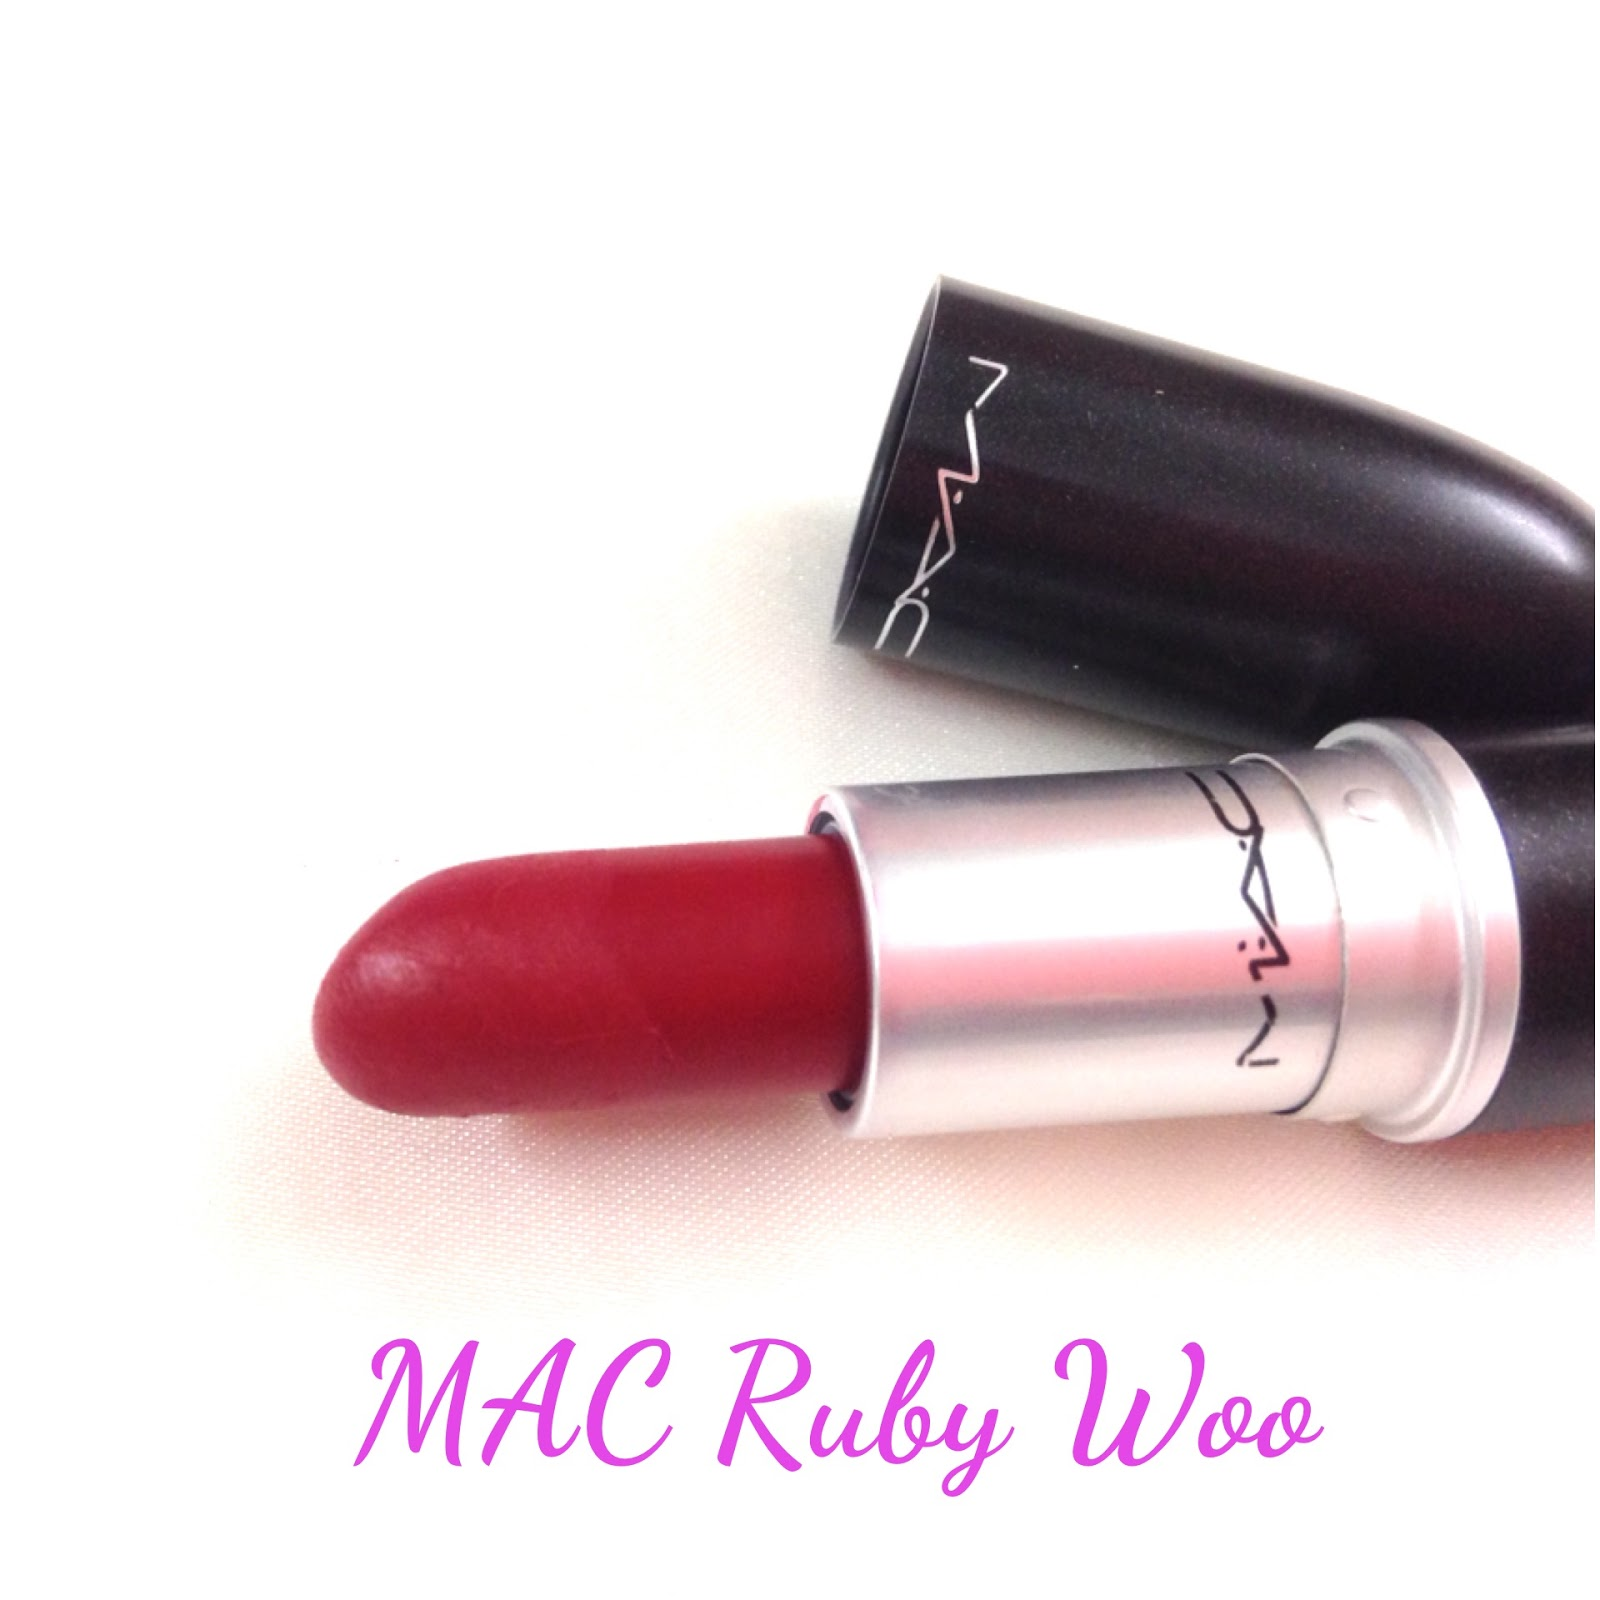 peaches and corals mac retro matte ruby woo lipstick